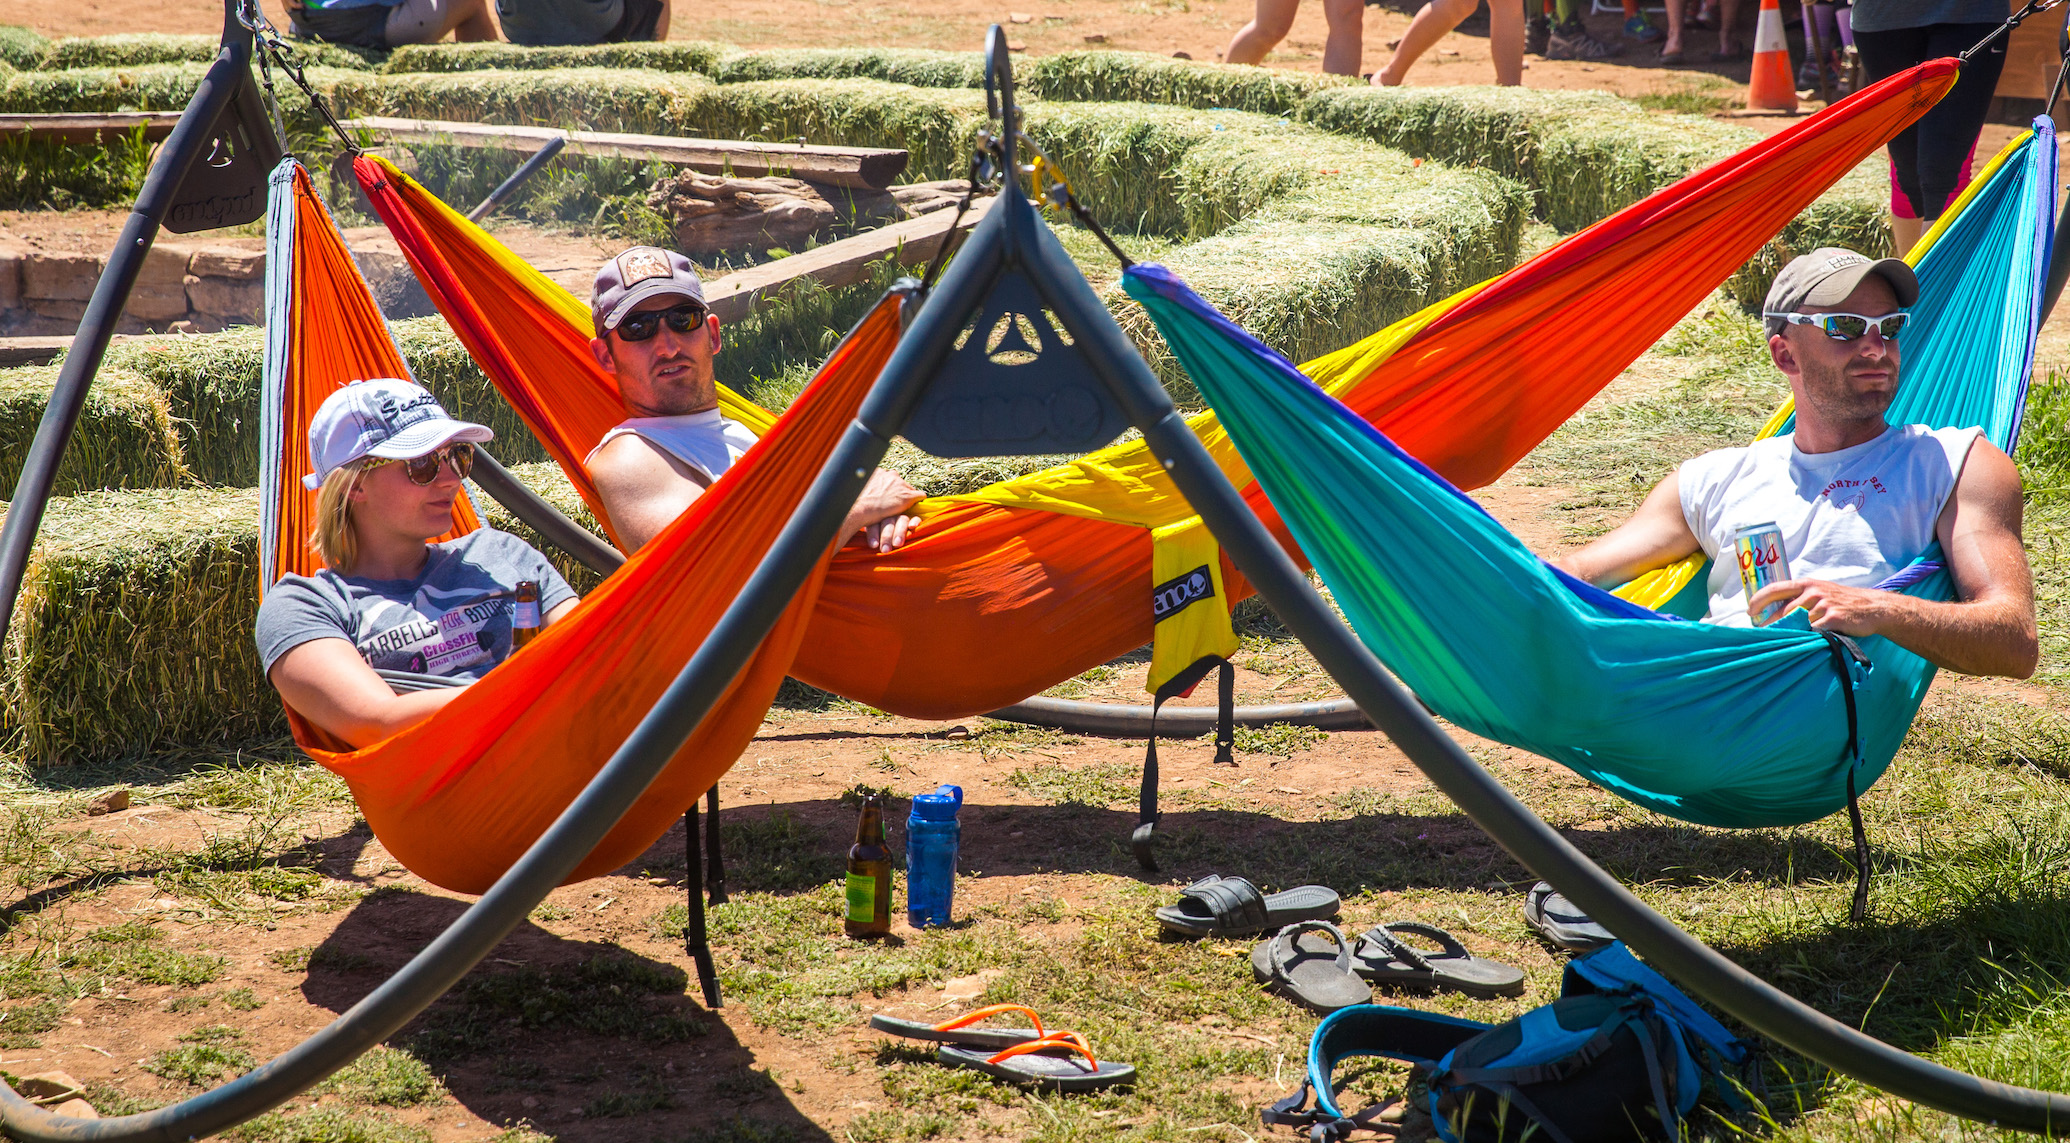 Hammocks at Ragnar Trail & Trade Your Vans for Tents and Try a Ragnar Trail Relay - Ragnar ...